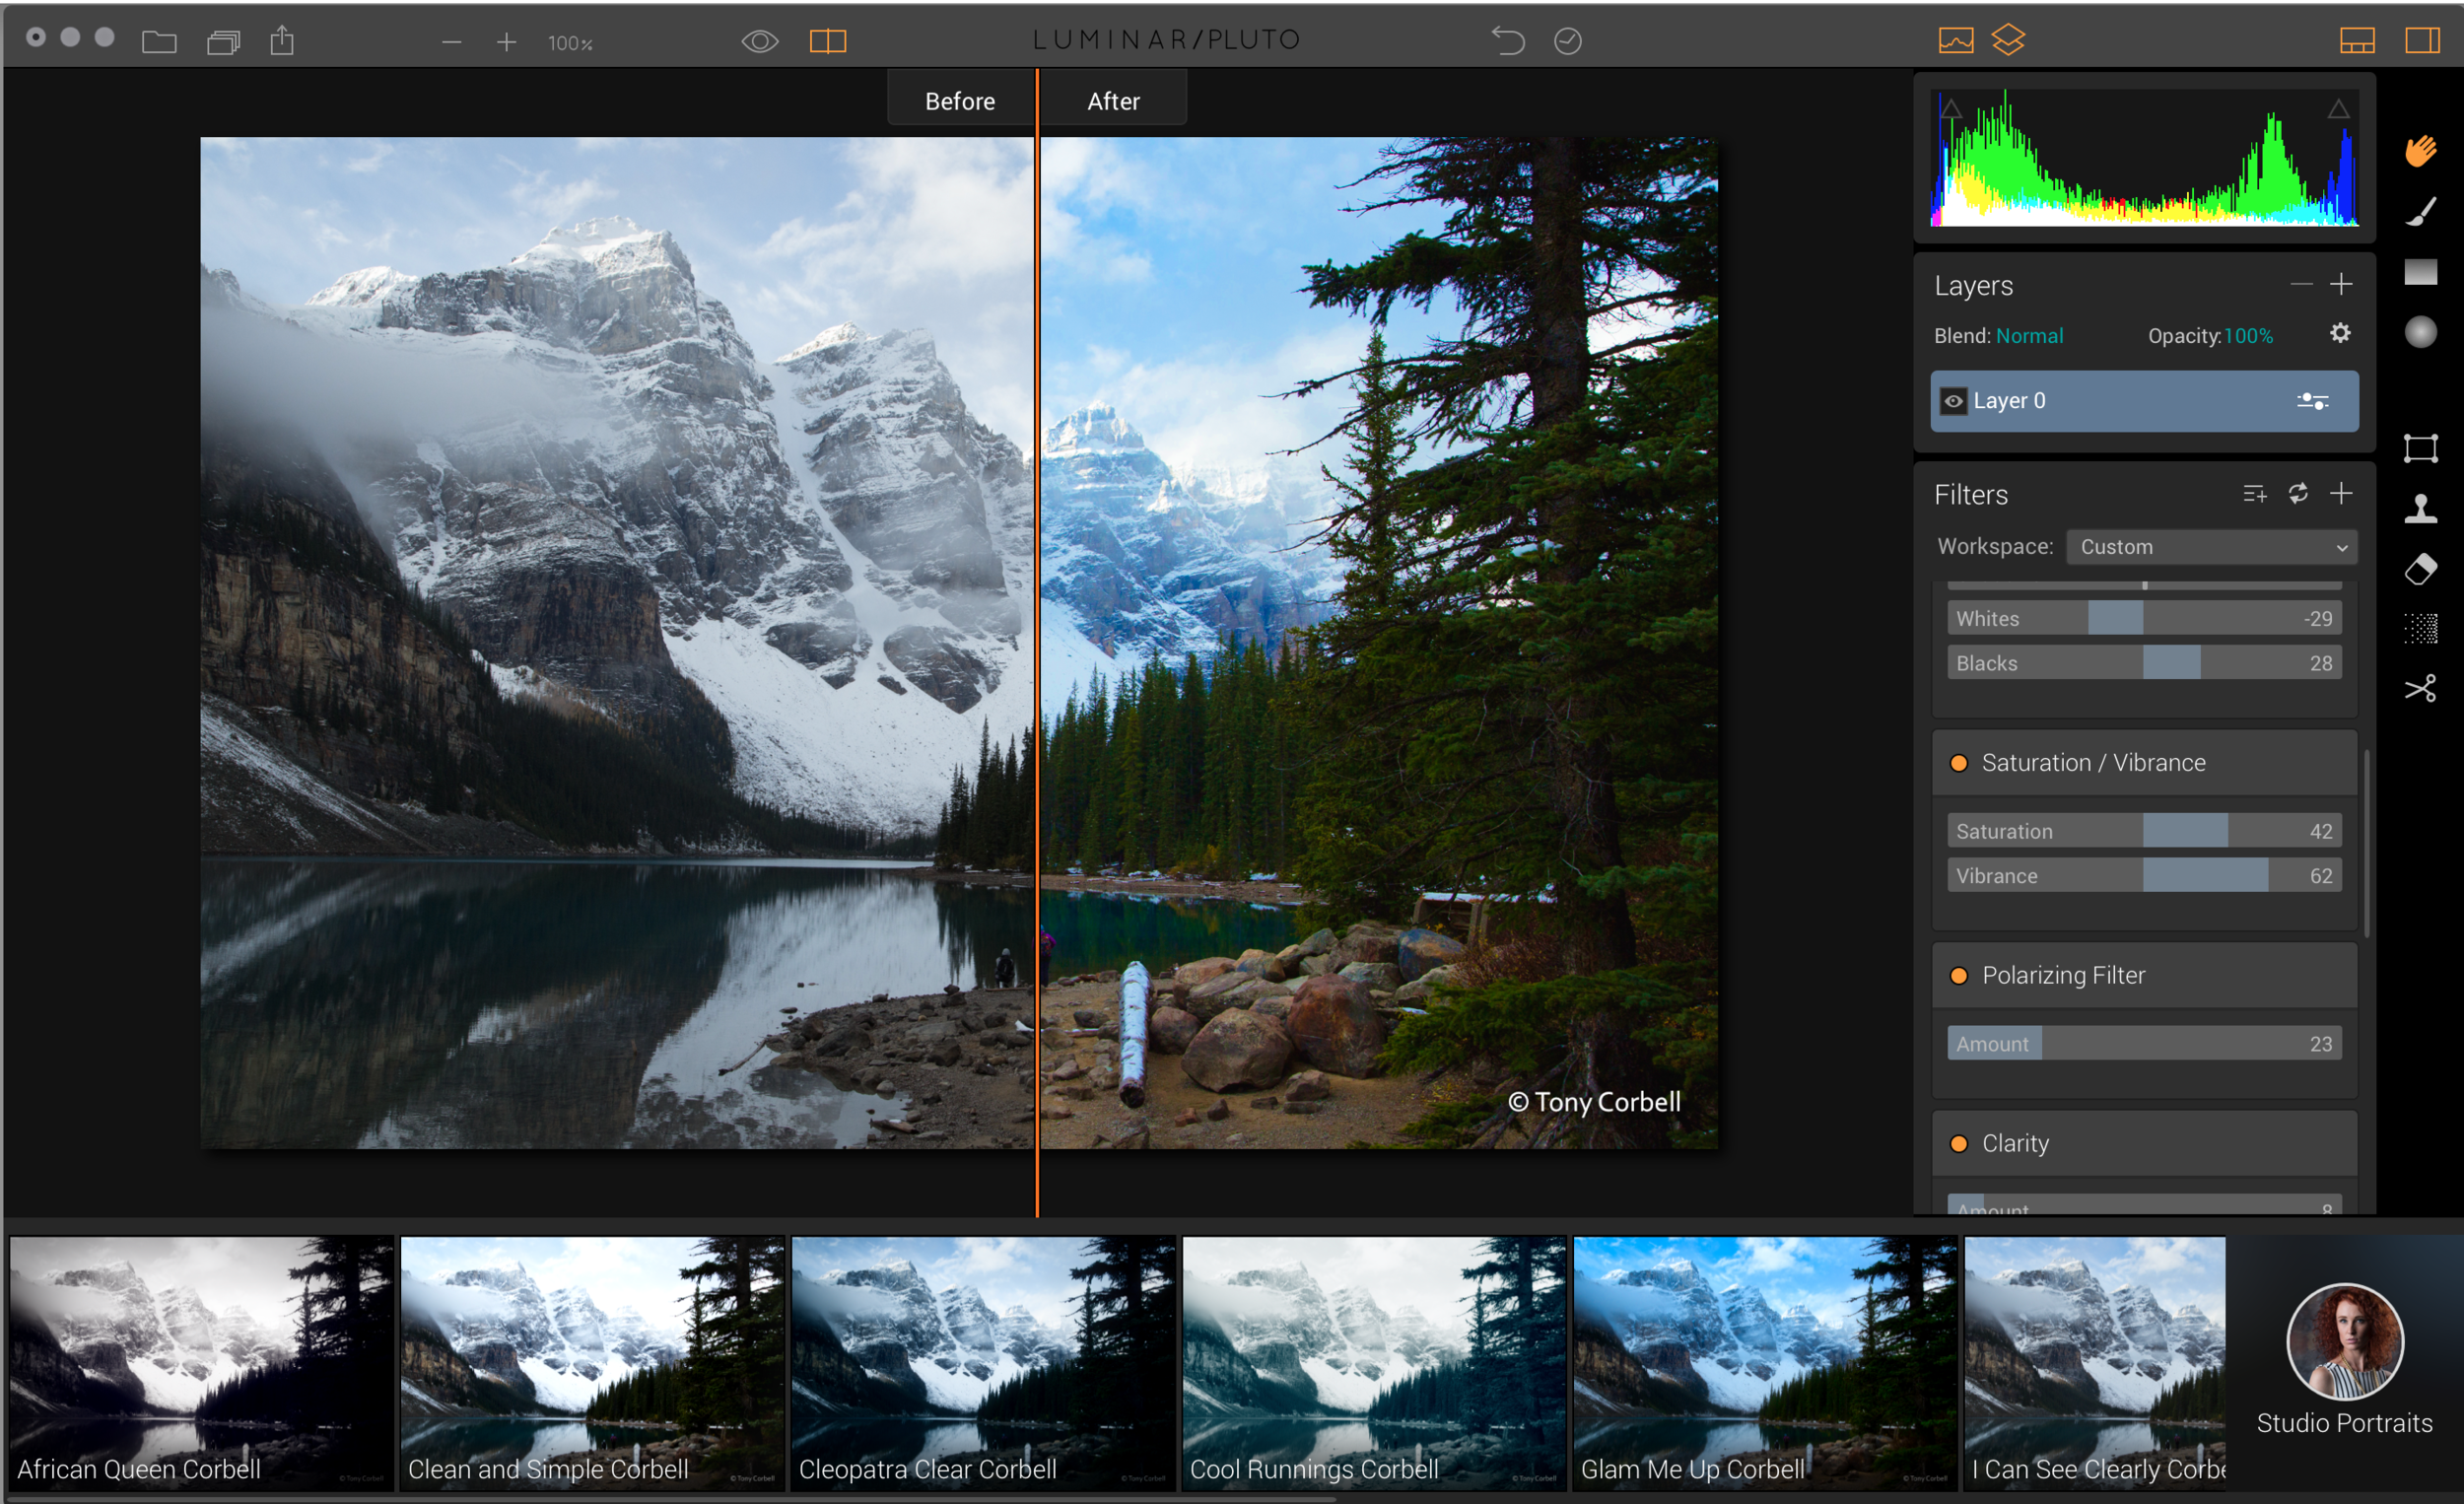 Luminar has a great user interface that is both intuitive and yet powerful enough for pros.